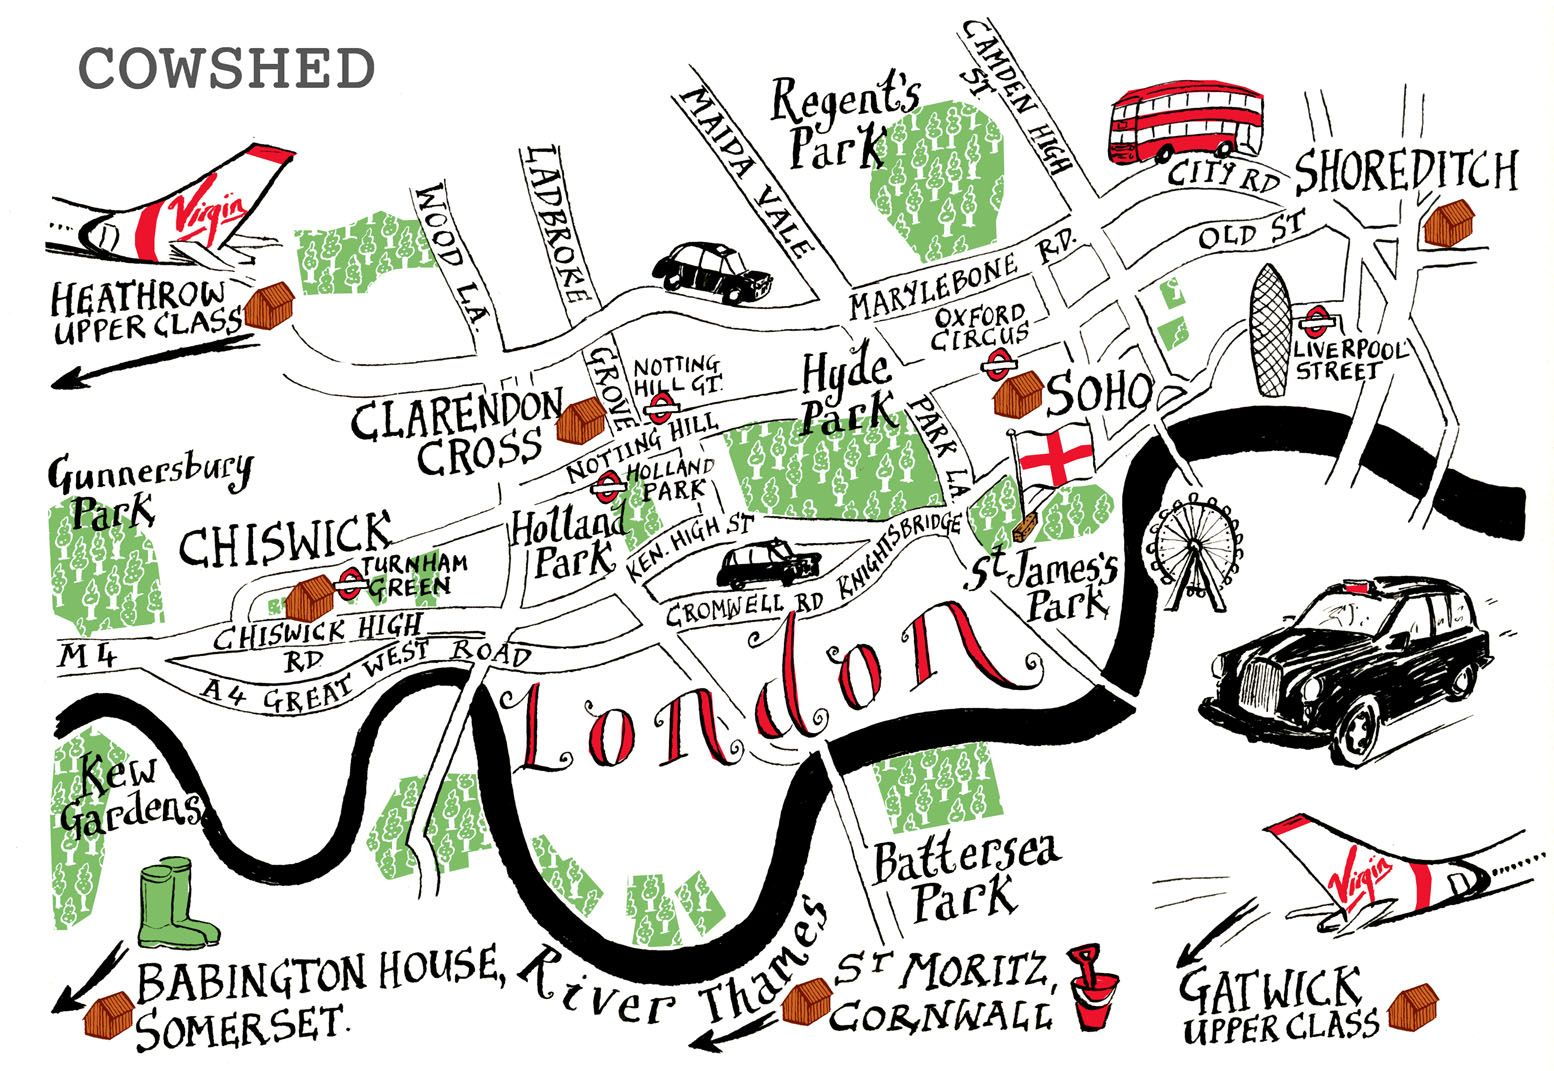 Easy London Map.Pin By Antonio Cau Illustrazioni On City Map London Map London